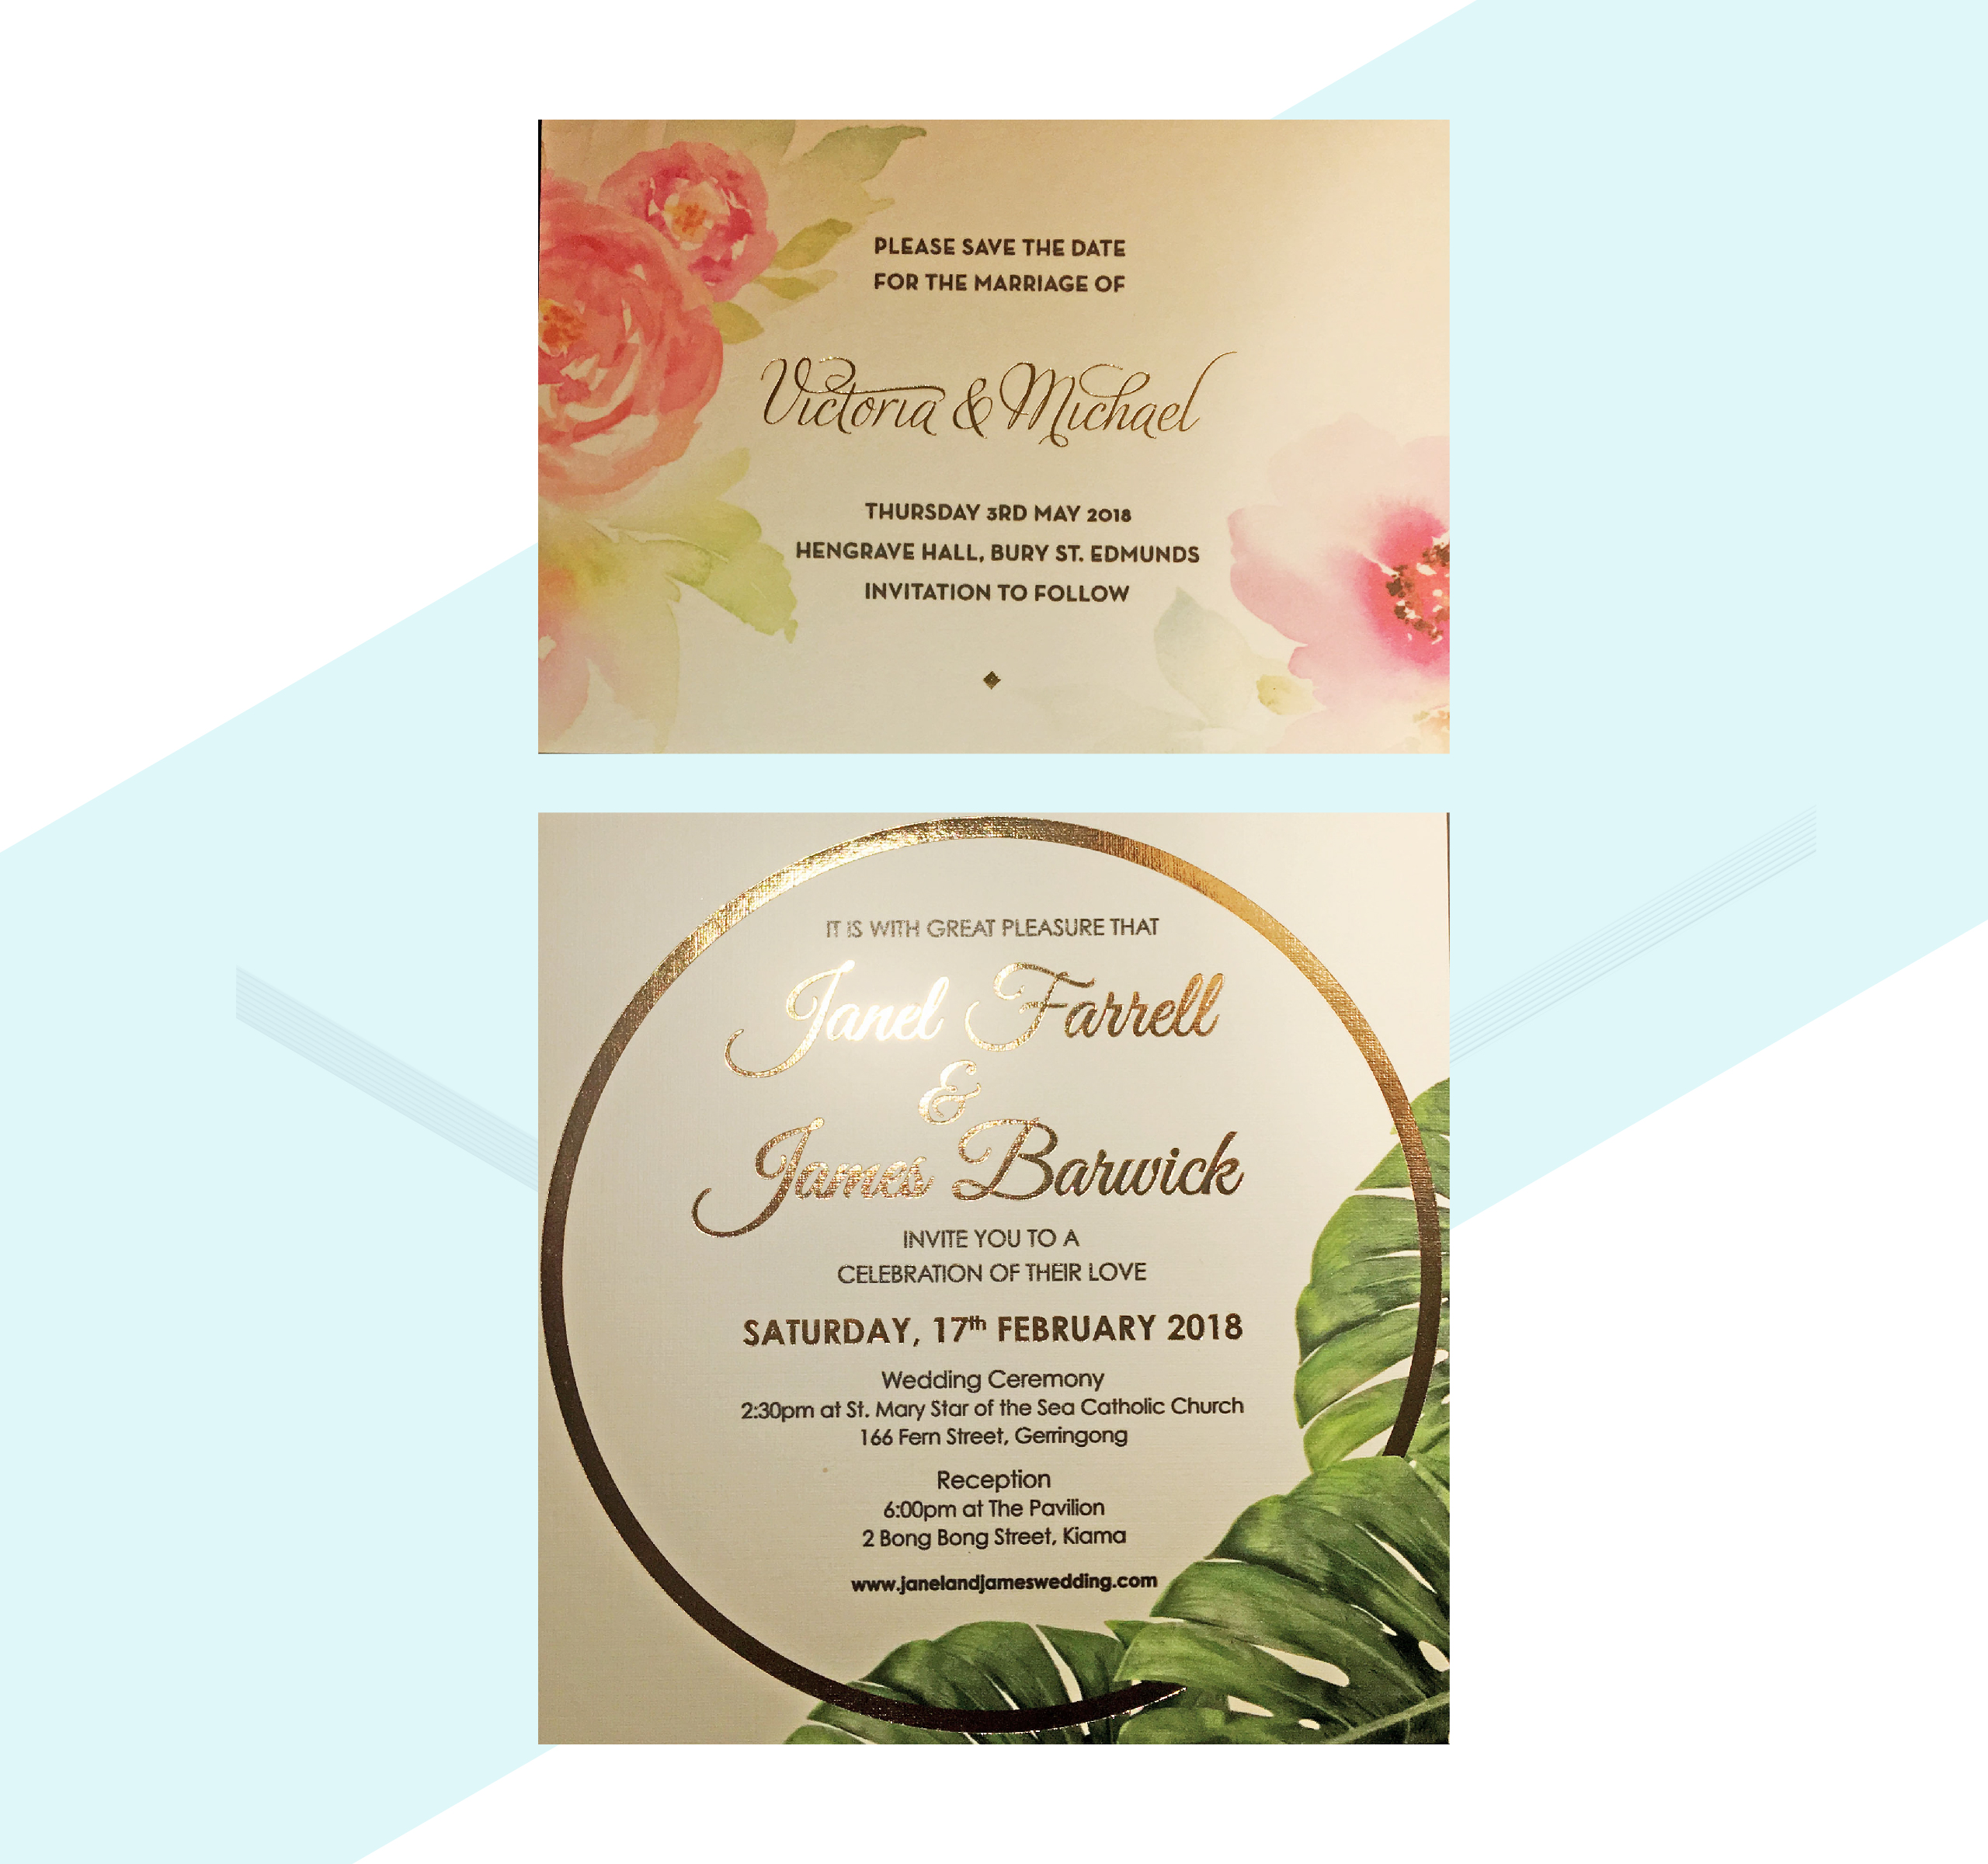 Invitation Cards Printing Services Hues Design And Print